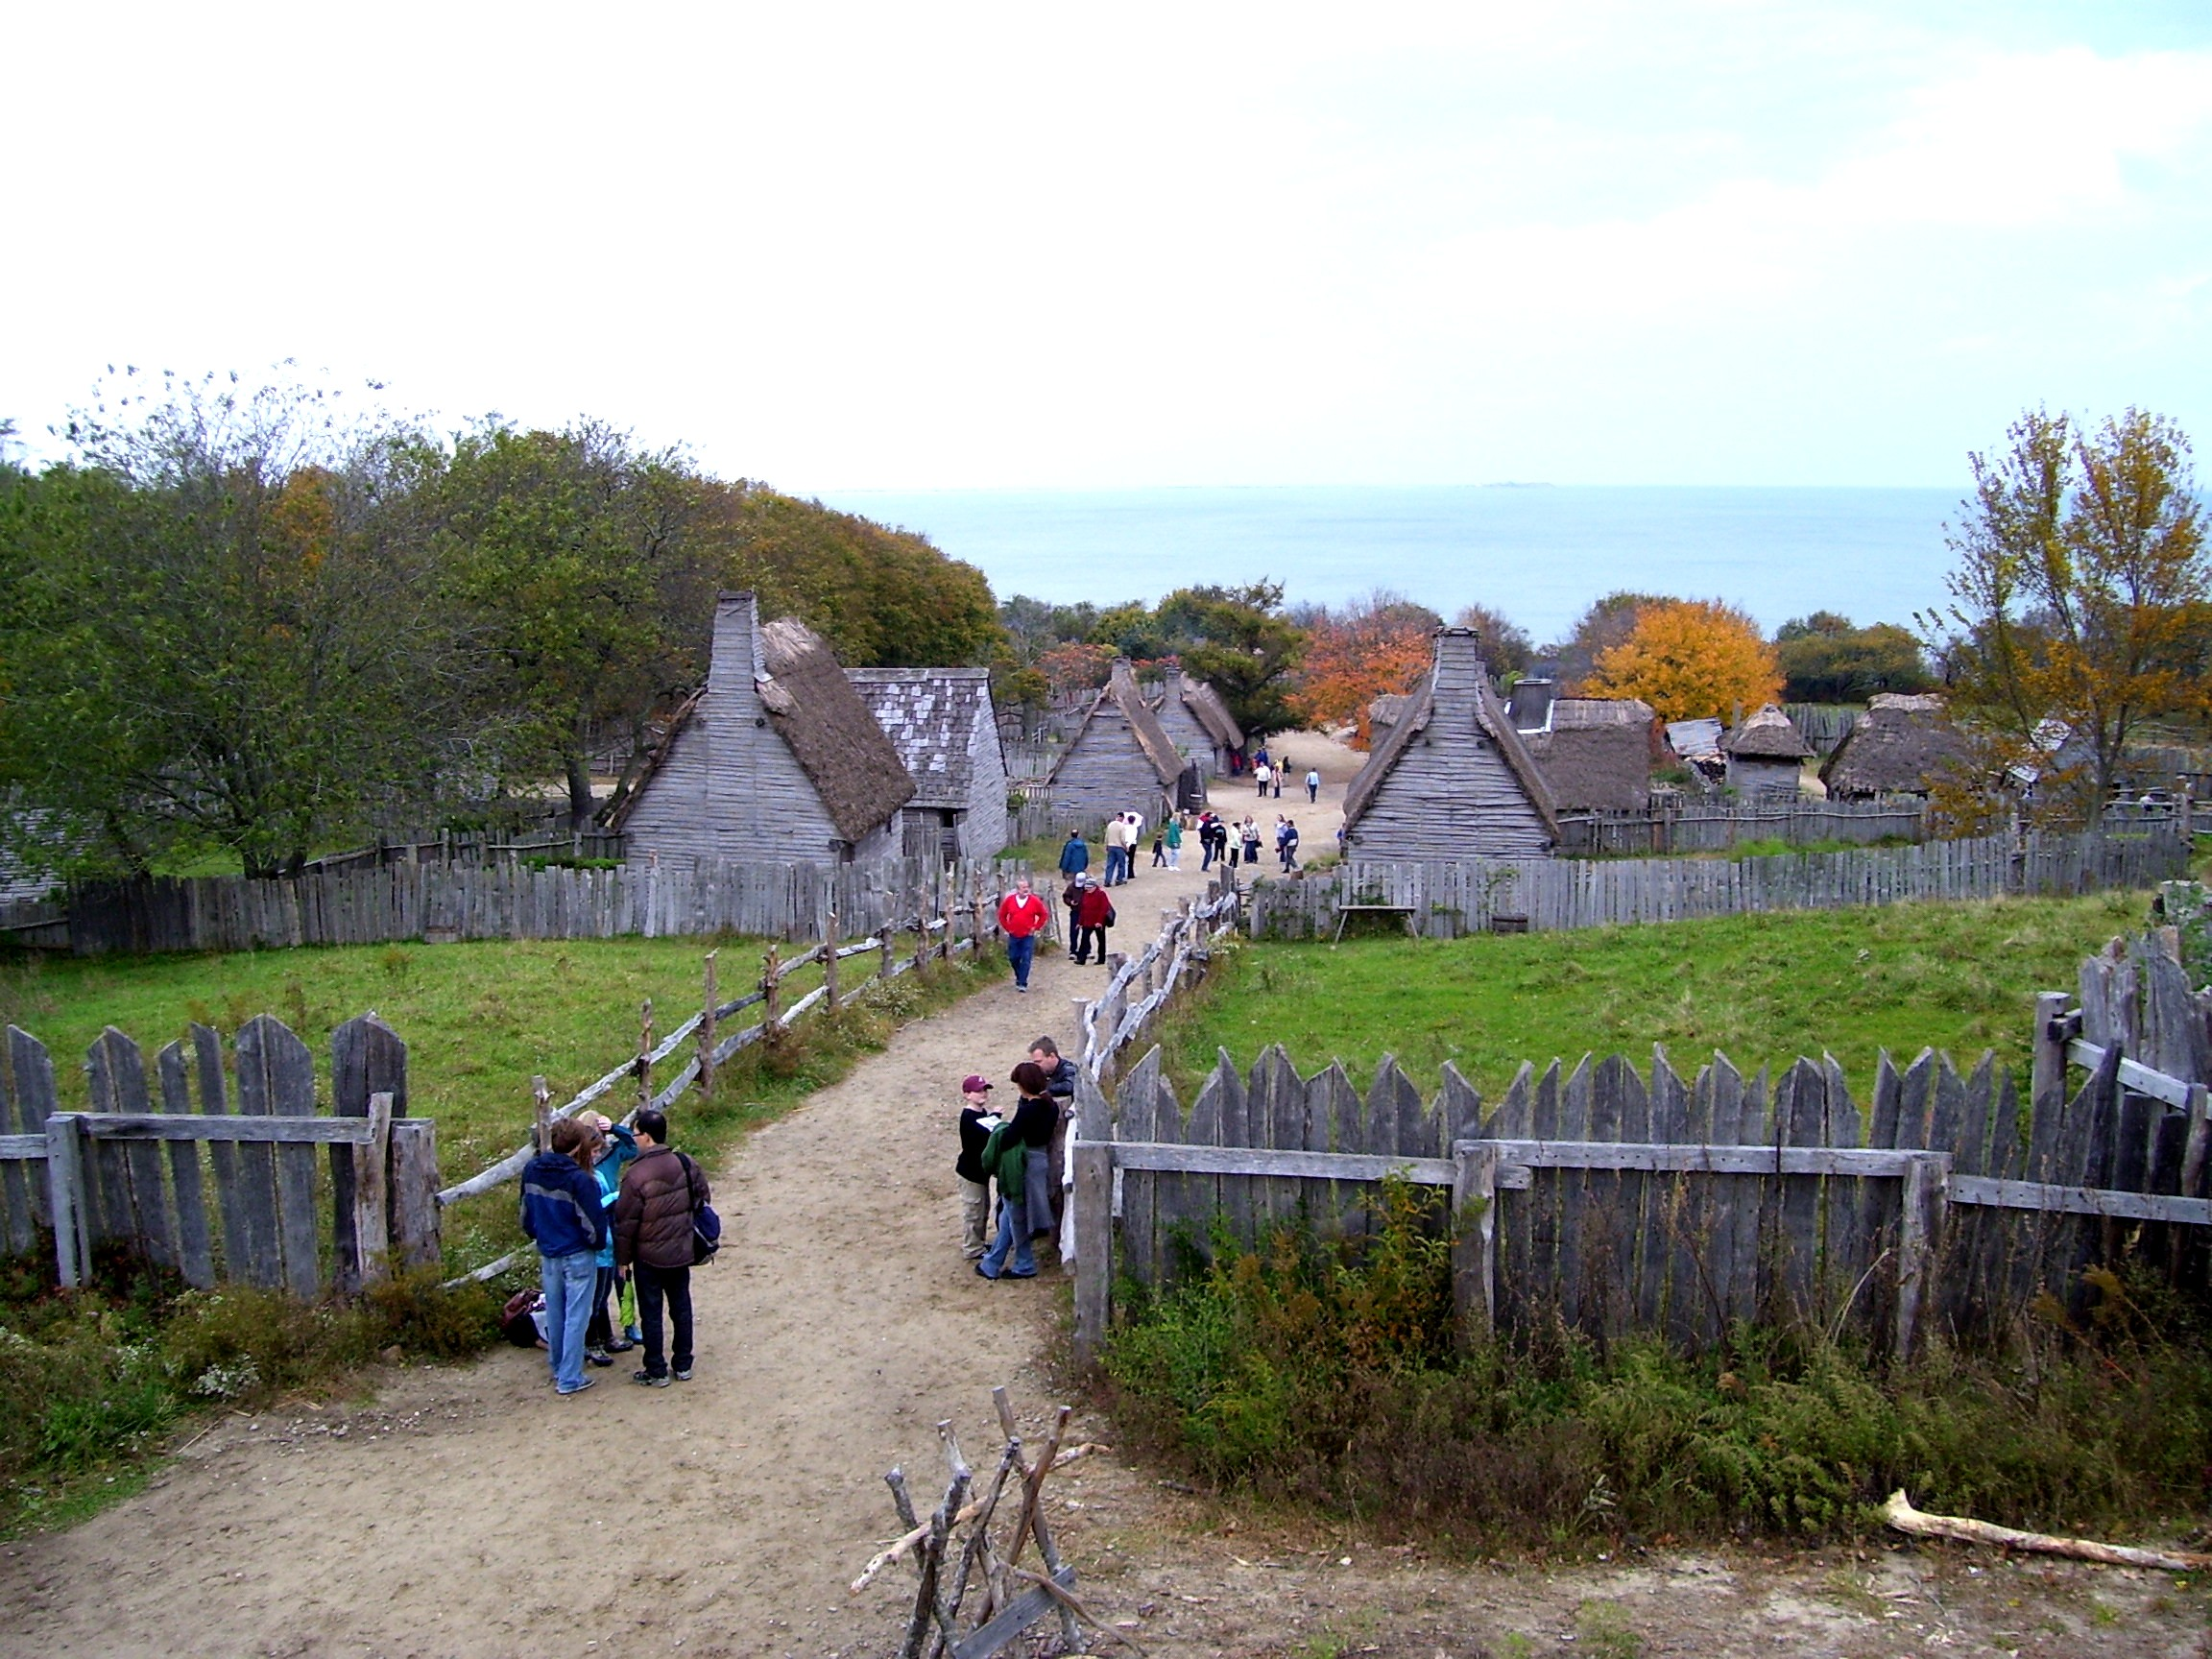 Plymoth plimoth plantation